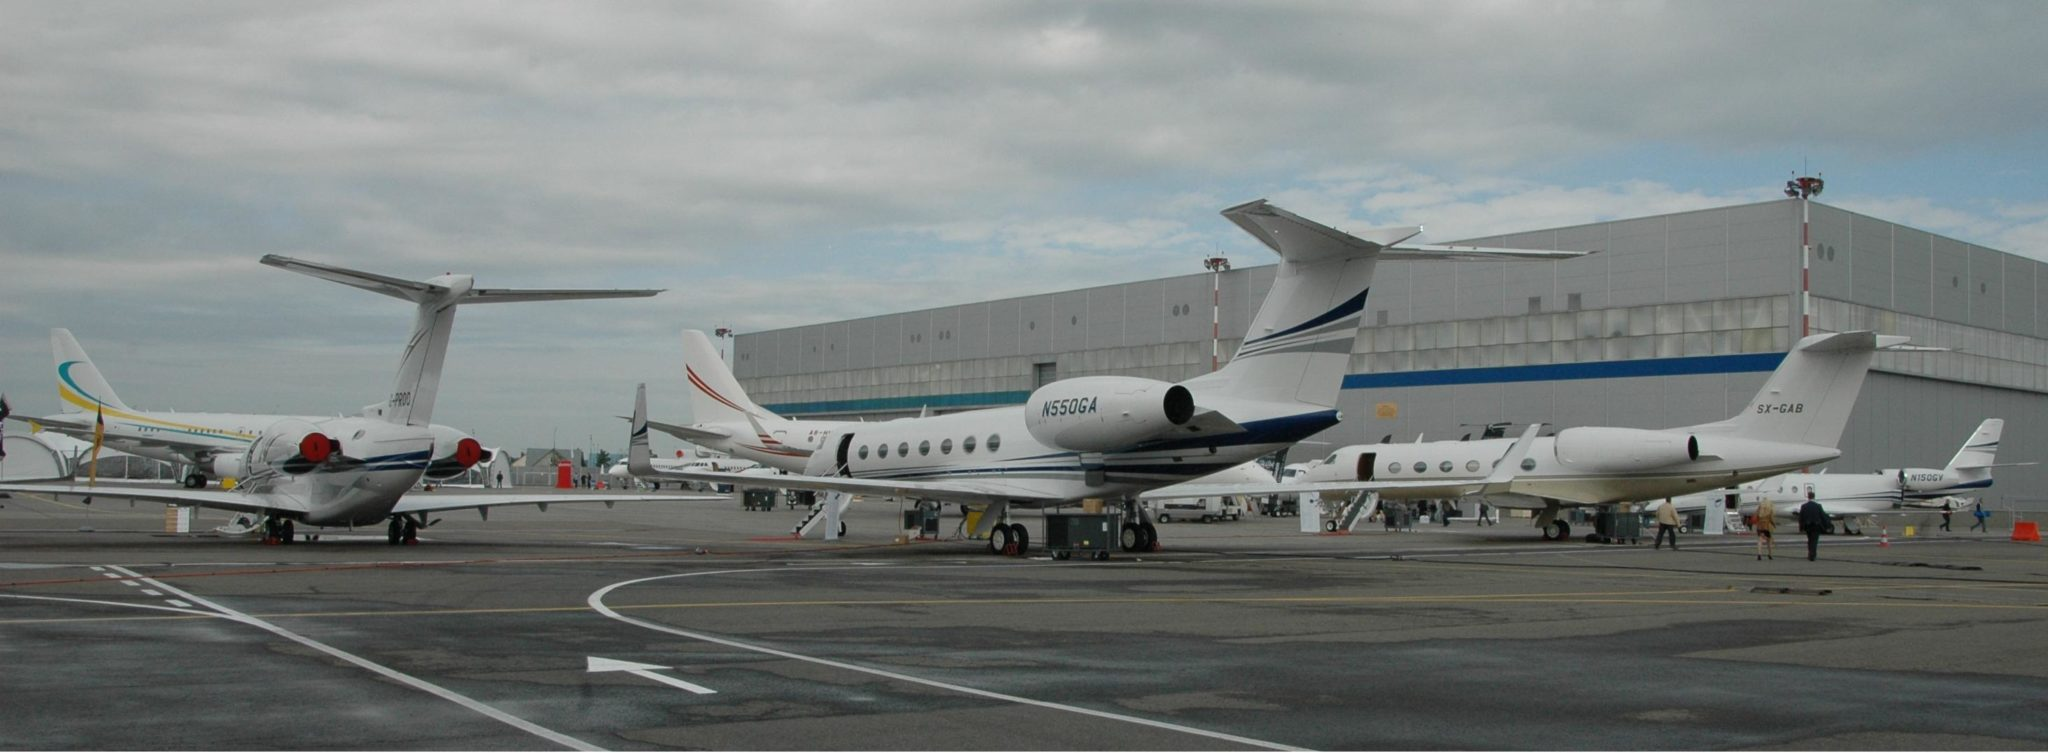 JetOptions charters private jets to Moscow